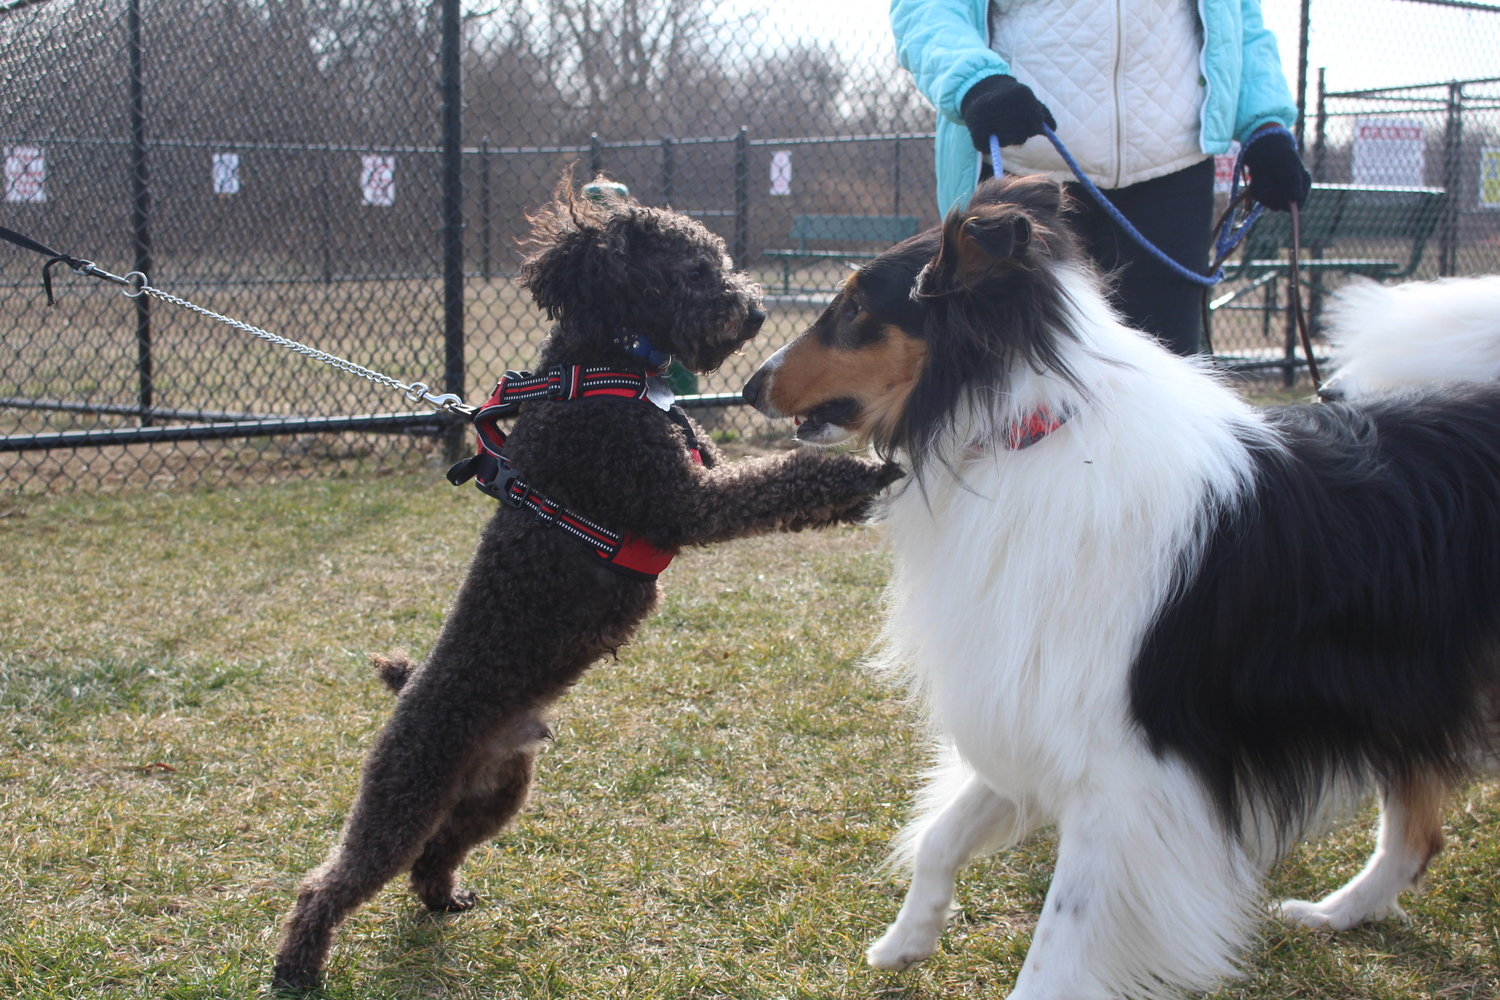 Town of Hempstead Councilman Tom Muscarella's dog, Junior, left, played with a Valley Stream resident's dog, Kylo, at the grand opening of the Baldwin Harbor Town Park dog run on Jan. 15.